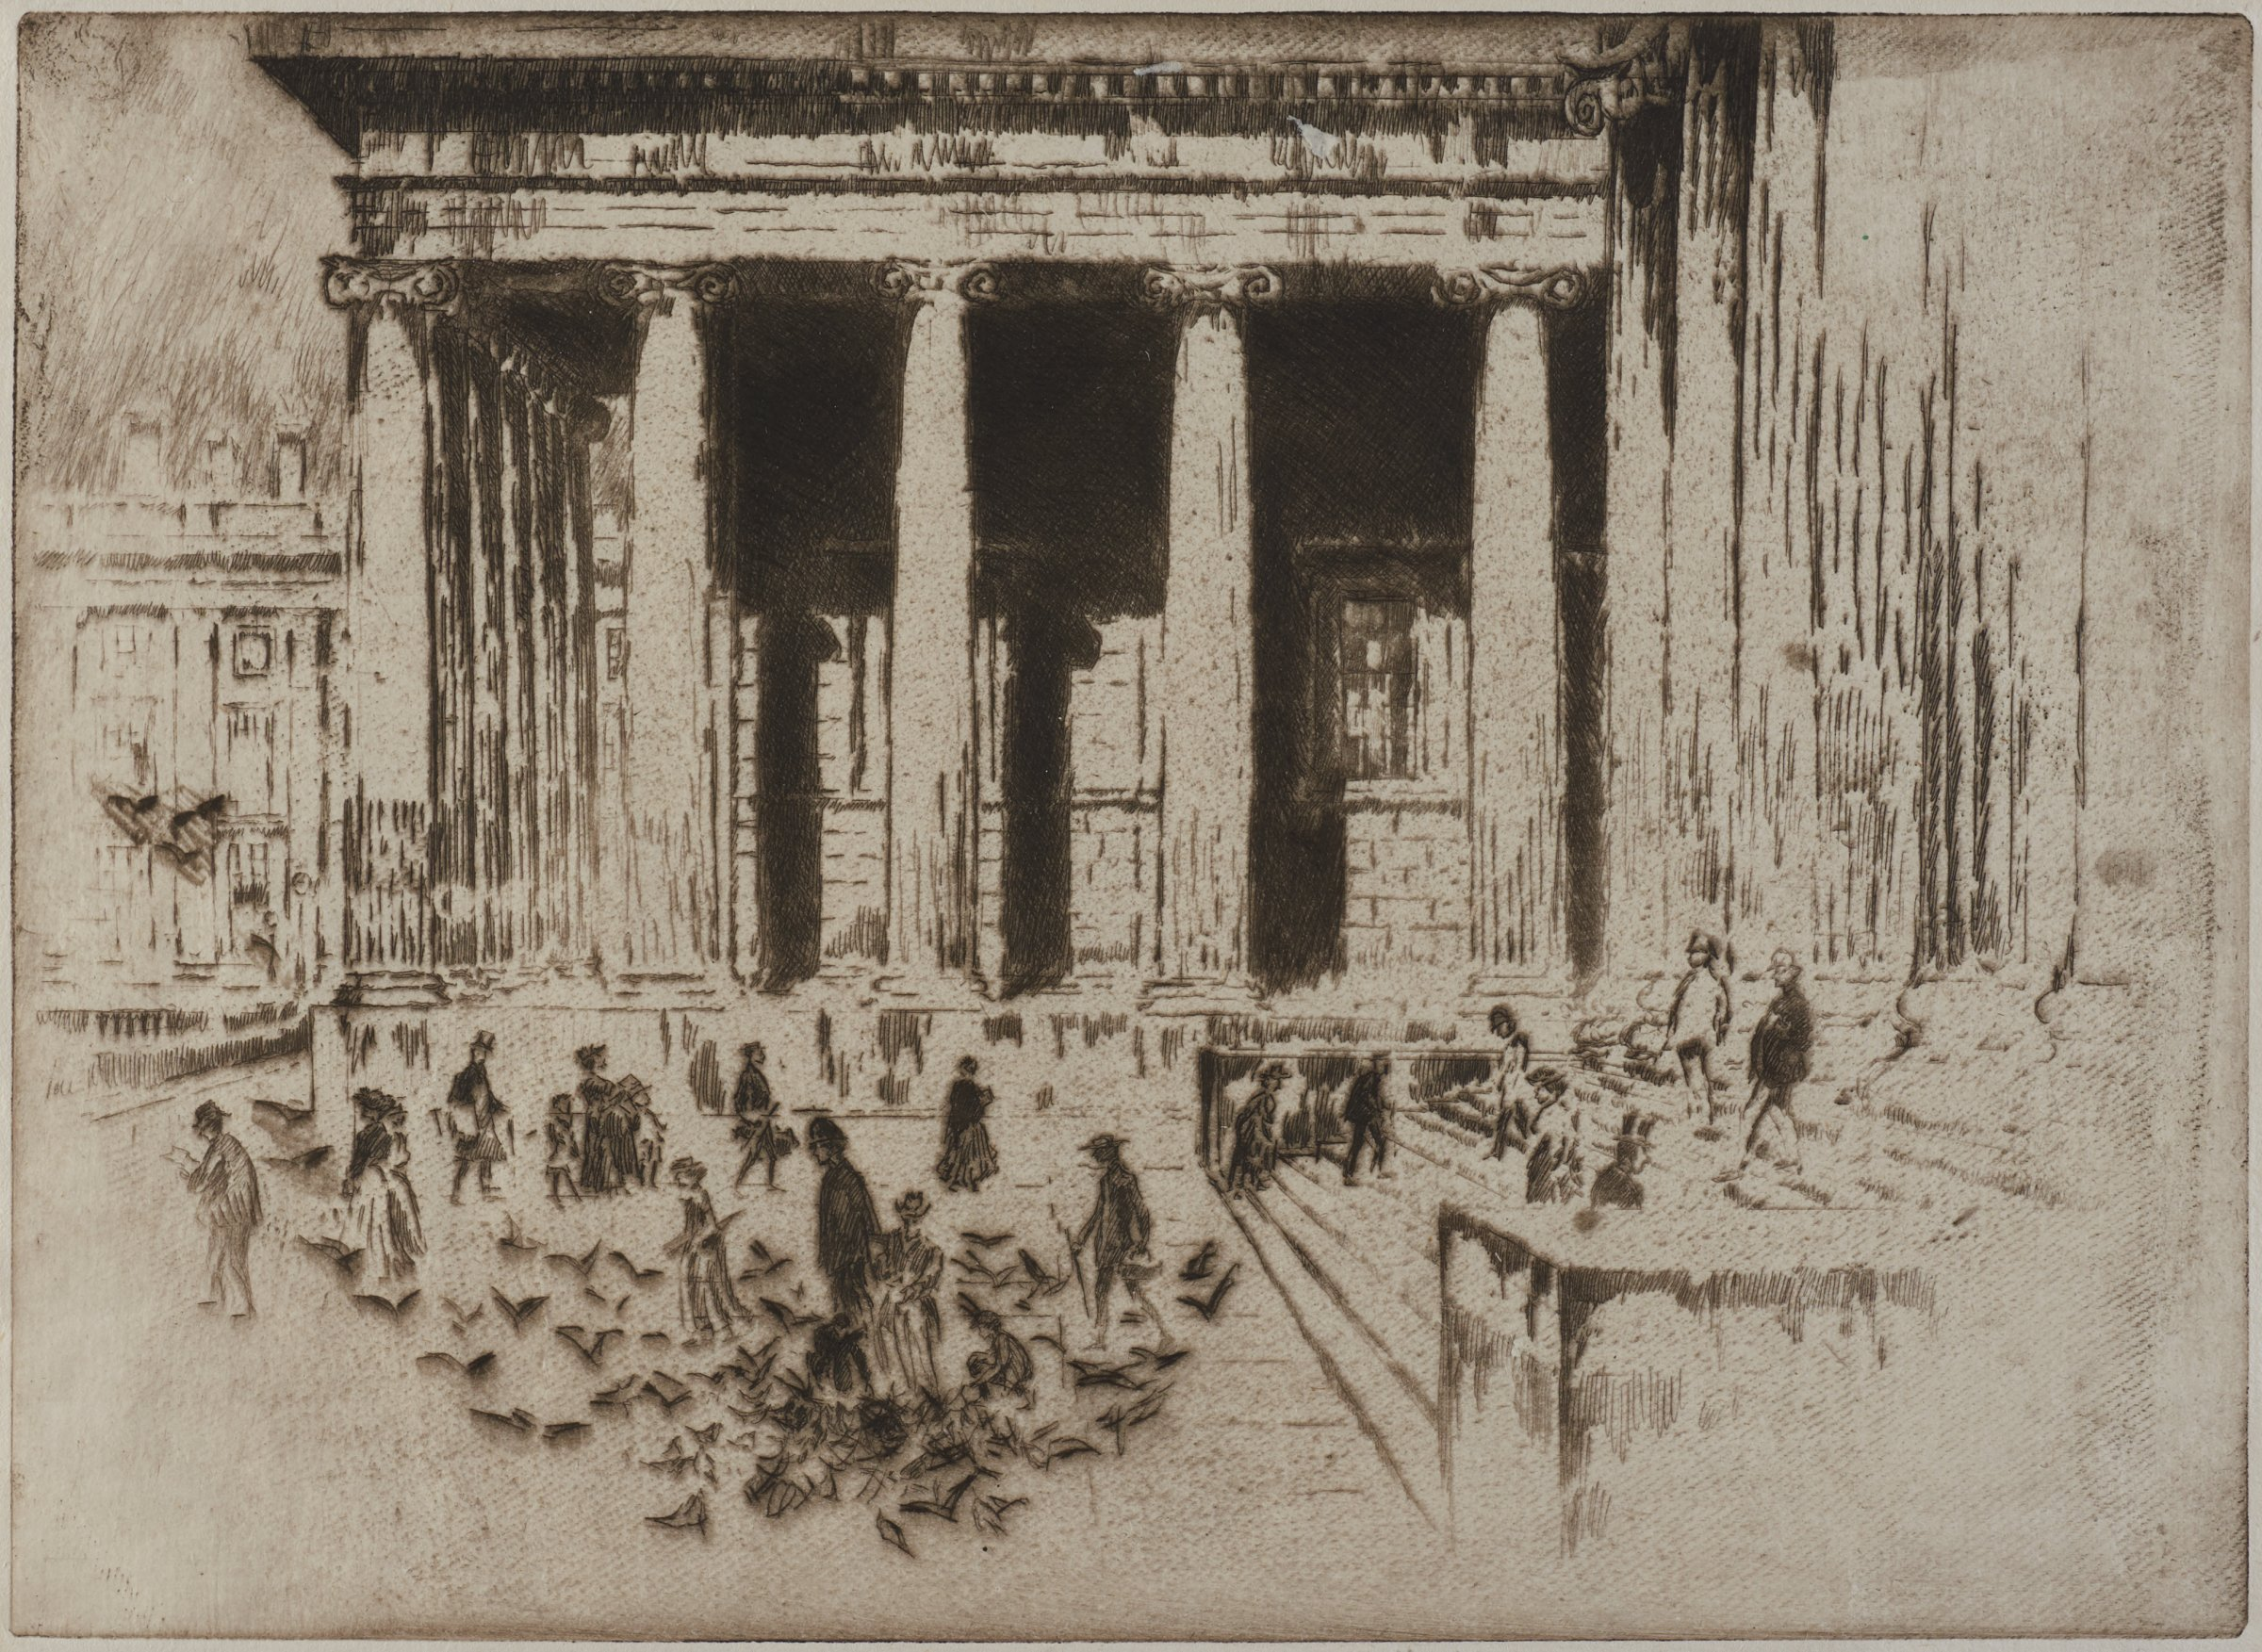 Steps of the British Museum, Joseph Pennell, etching